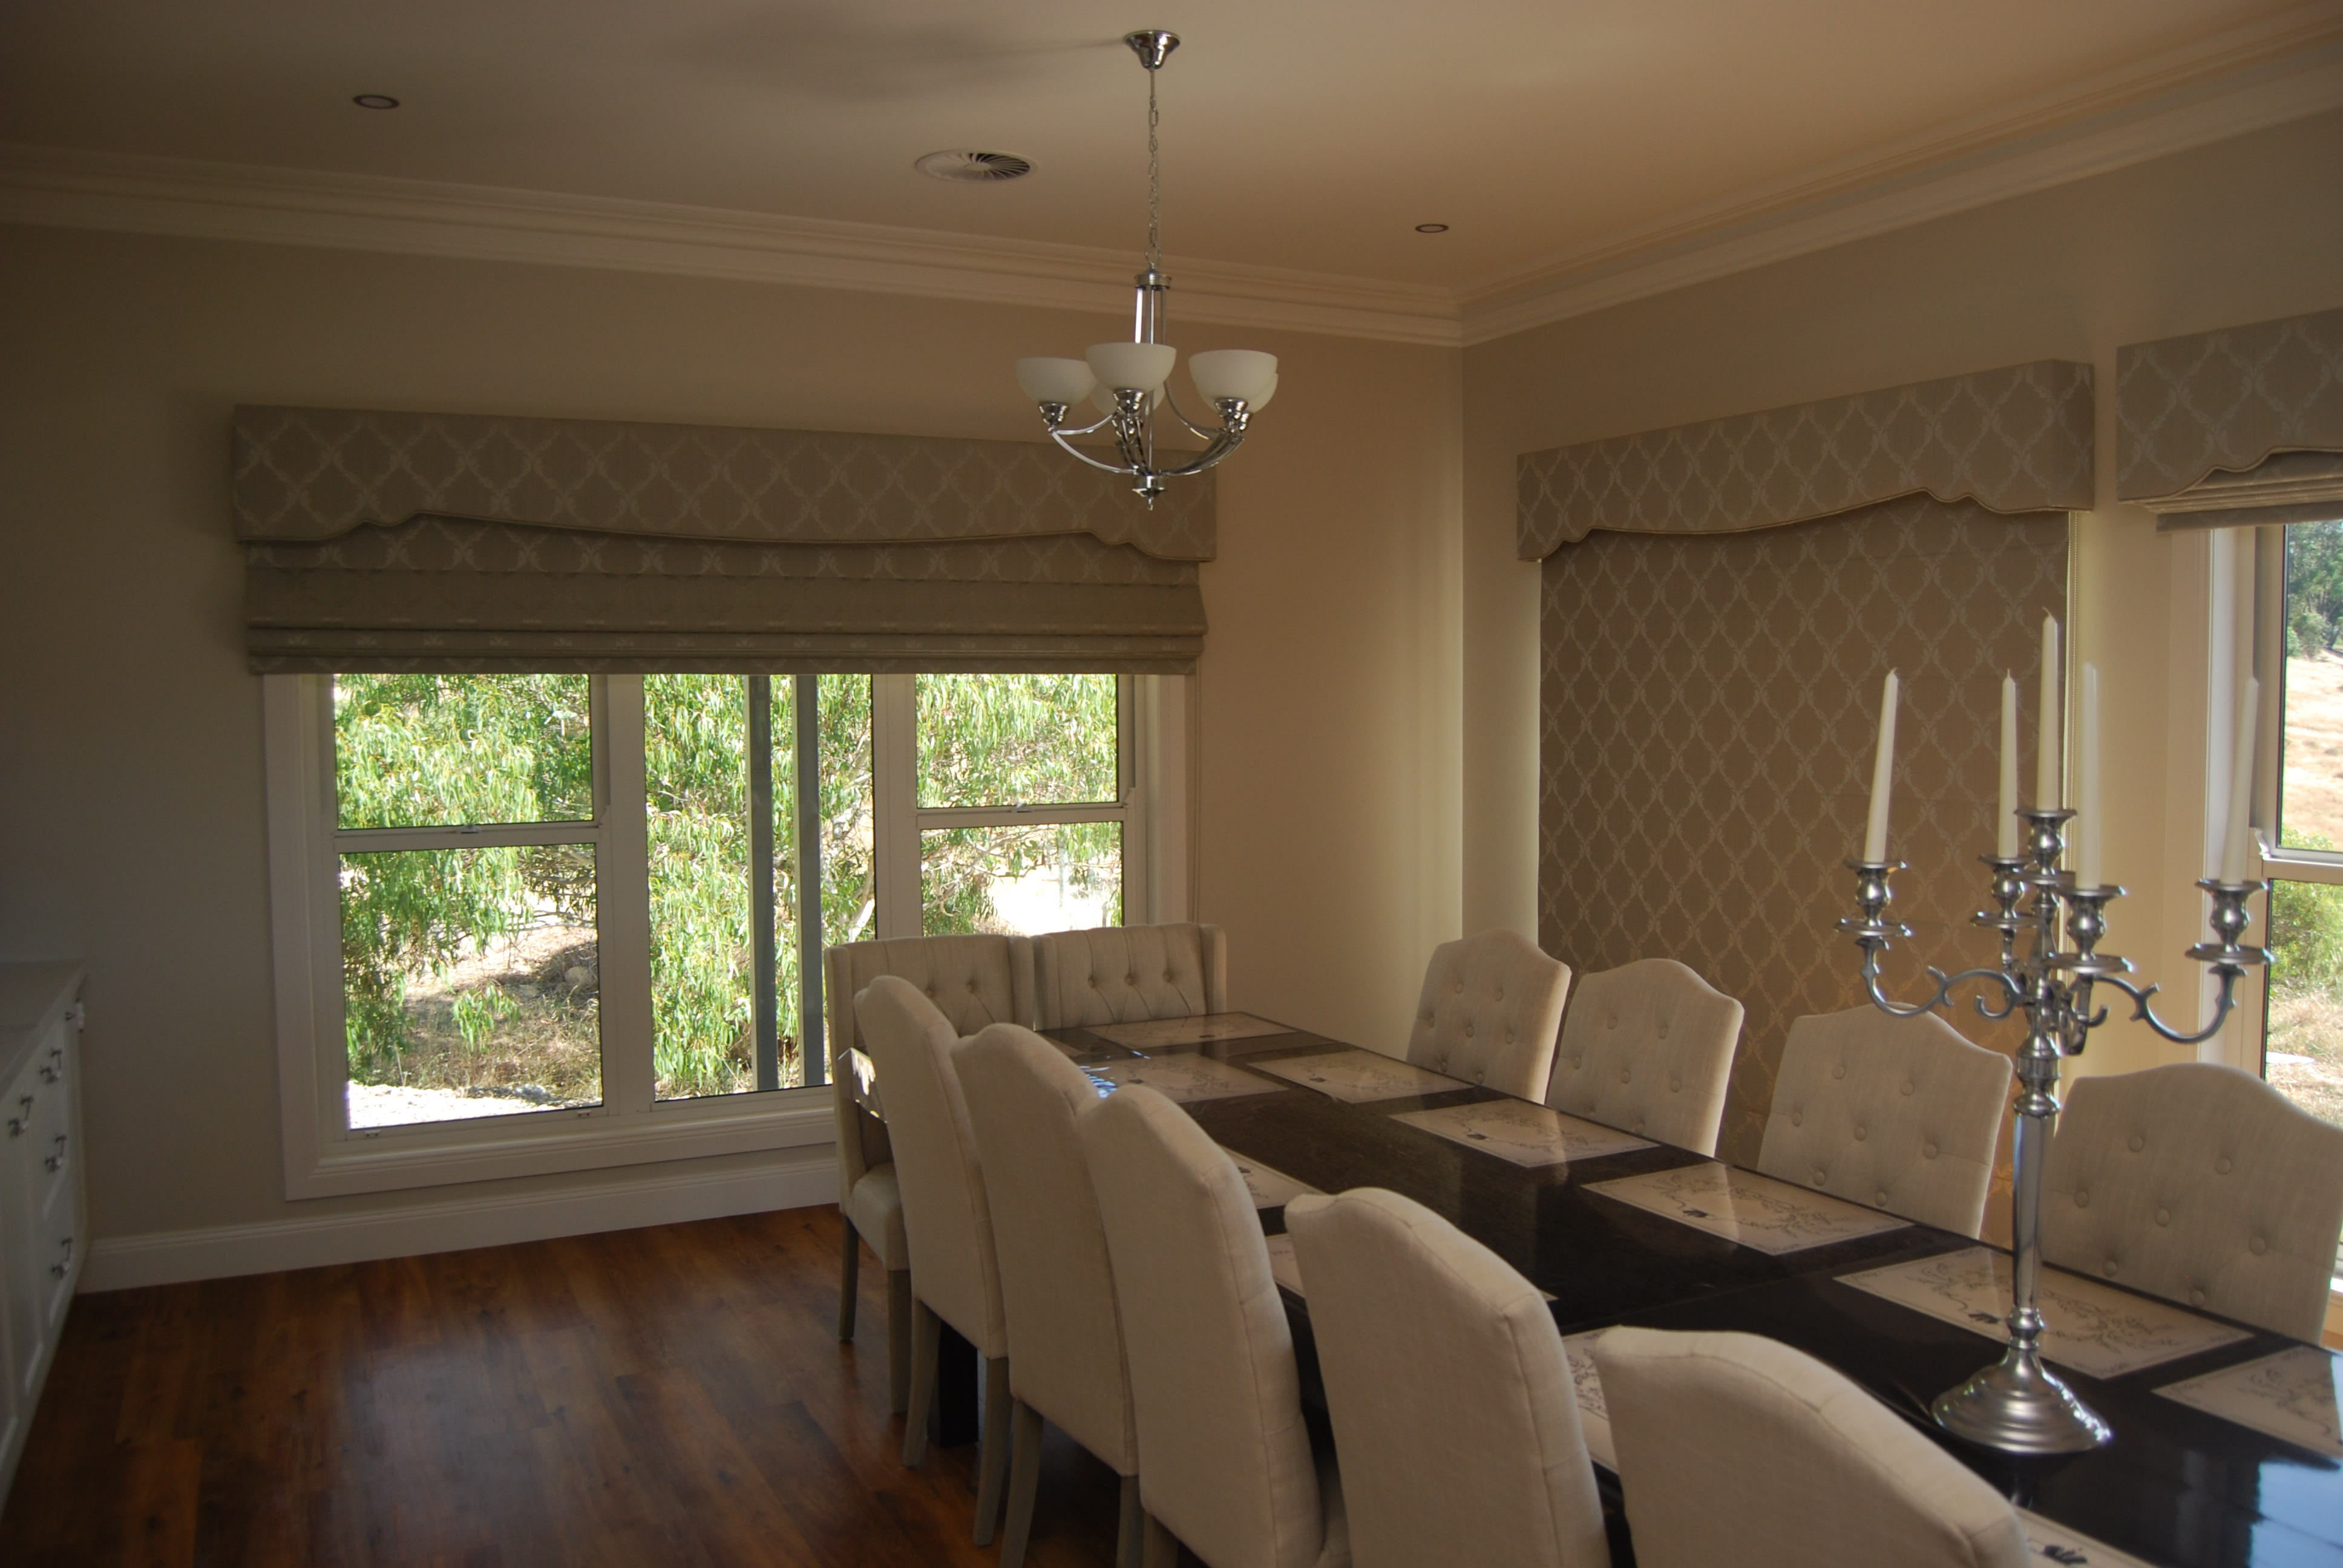 Soft Roman Blinds with Pelmets in Dining Room_1.JPG